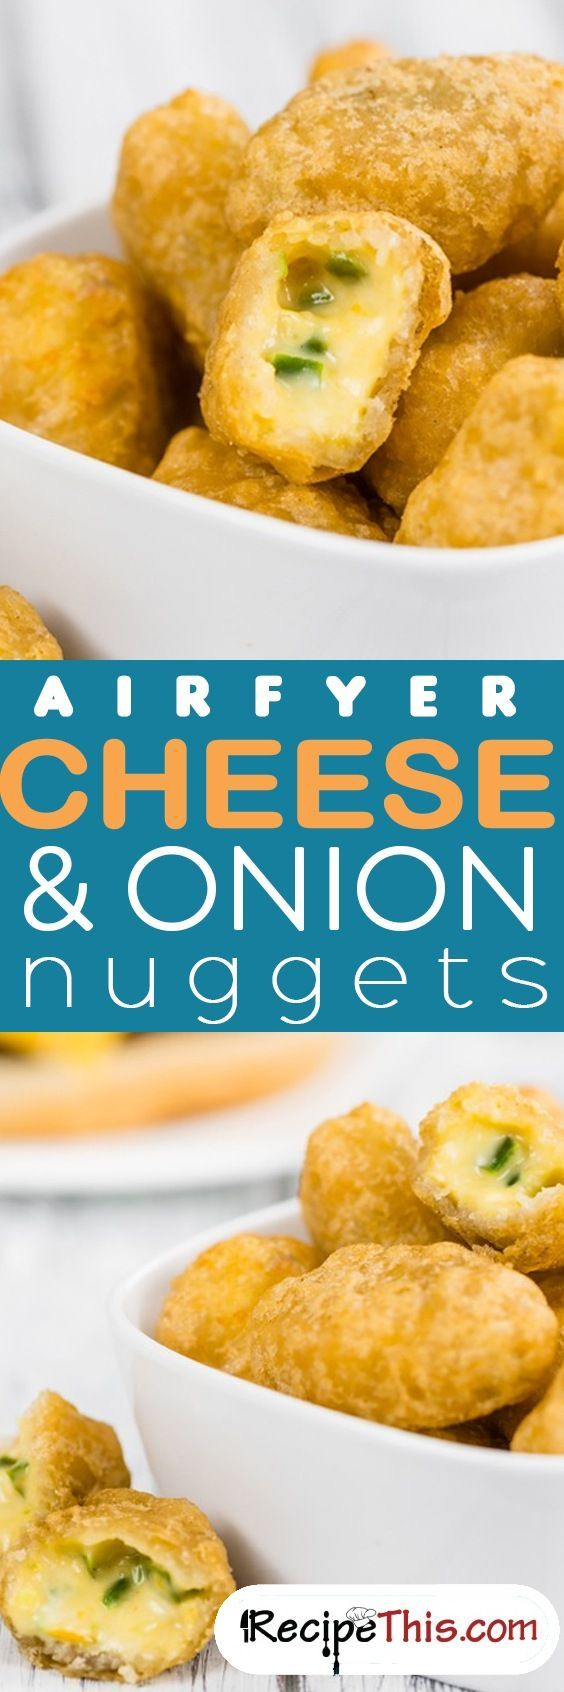 #AirfryerRecipes | Airfryer Cheese & Onion Nuggets